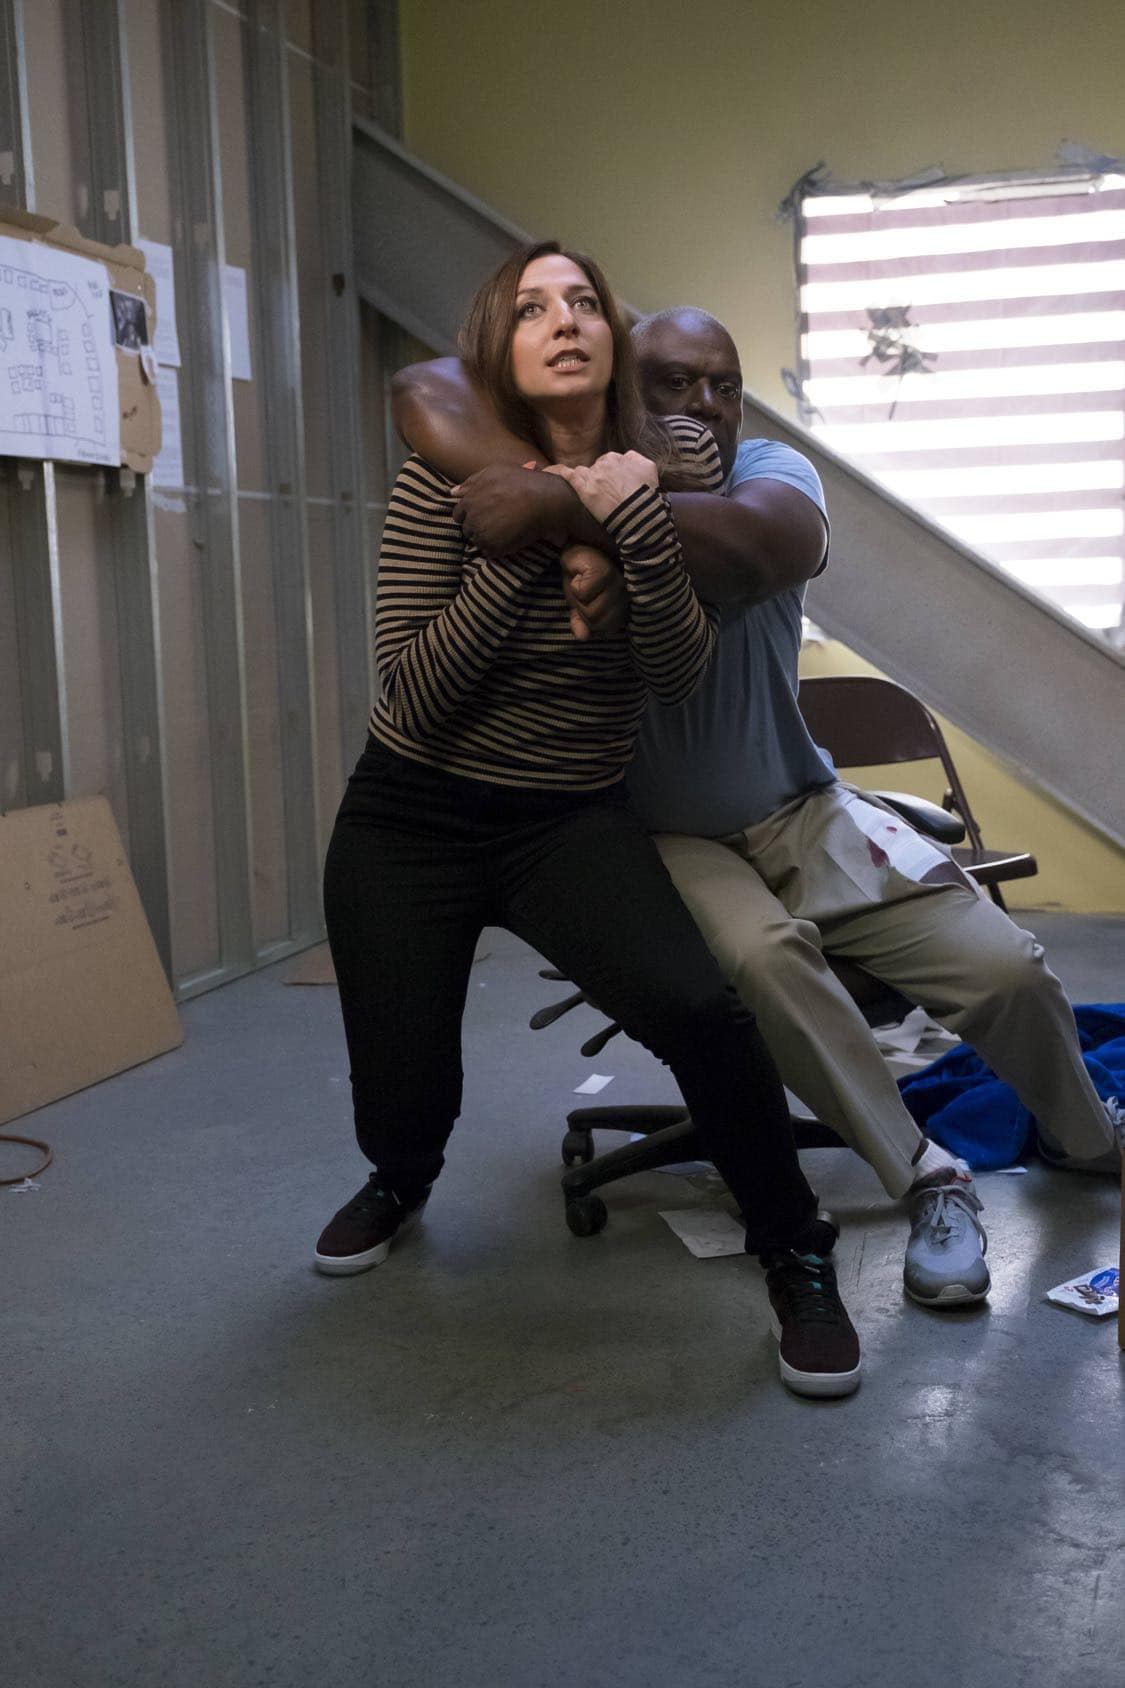 """BROOKLYN NINE-NINE: L-R: Chelsea Peretti and Andre Braugher in the """"Coral Palms Pt.3"""" episode of BROOKLYN NINE-NINE airing Tuesday, Oct. 4 (8:00-8:30 PM ET/PT) on FOX. CR: John P Fleenor/FOX"""